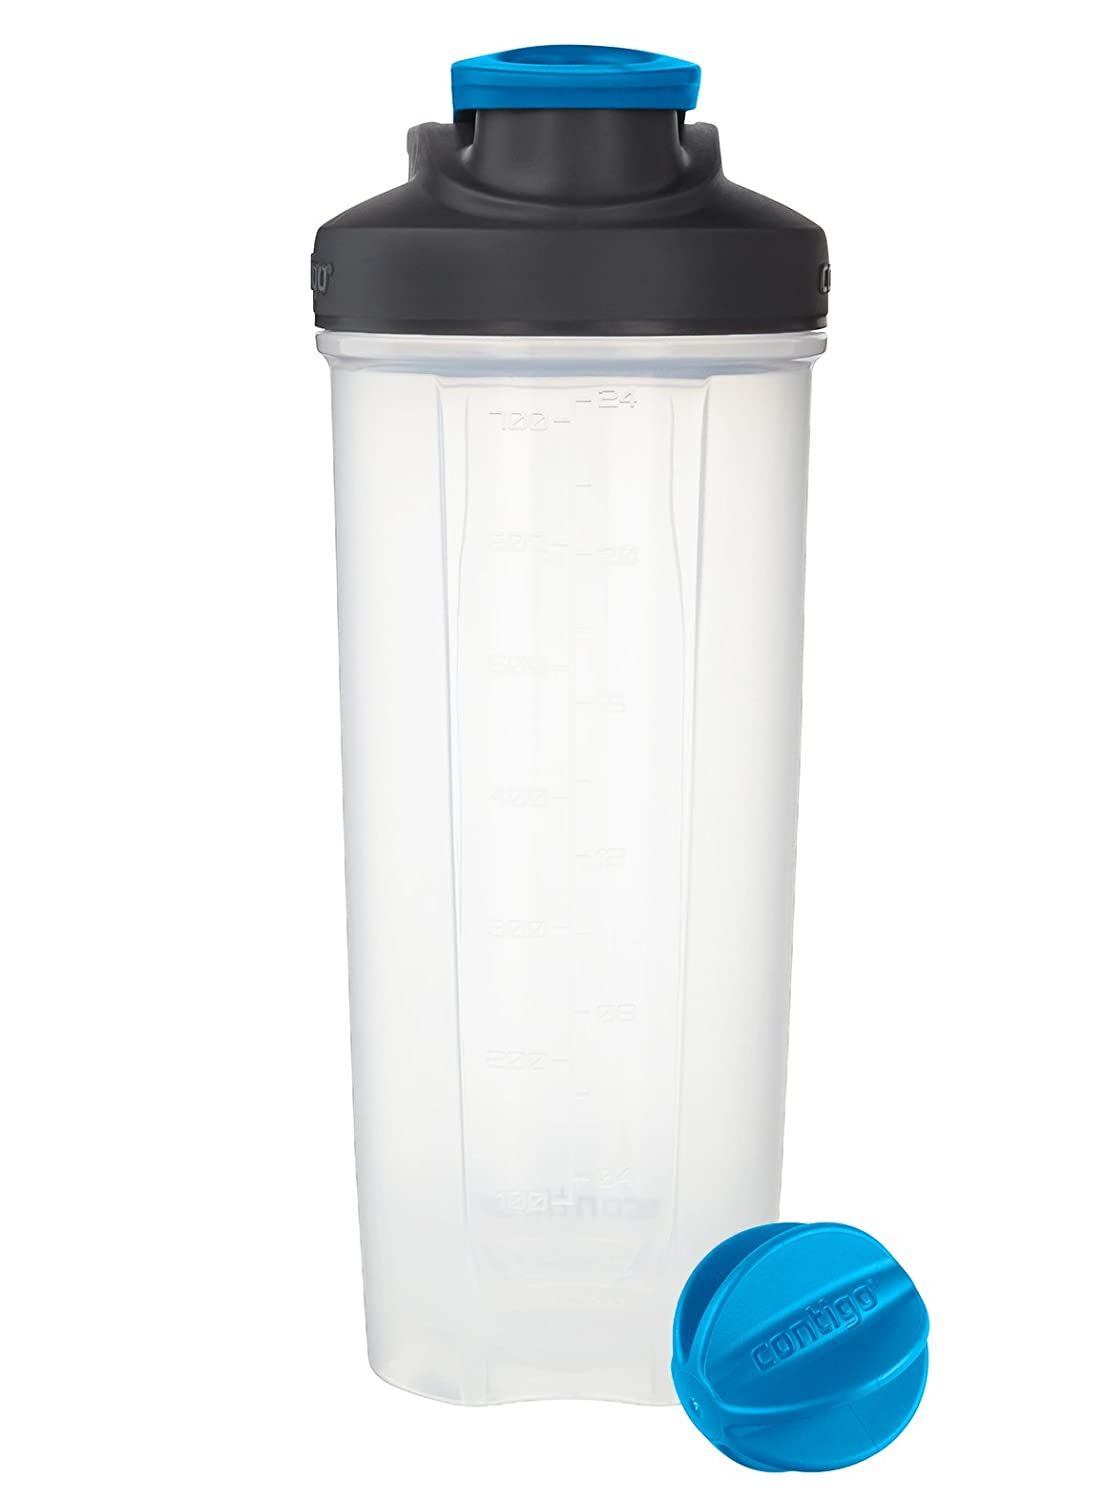 Contigo Shake & Go Fit Snap Lid Shaker Bottle, 28 oz, Carolina Blue